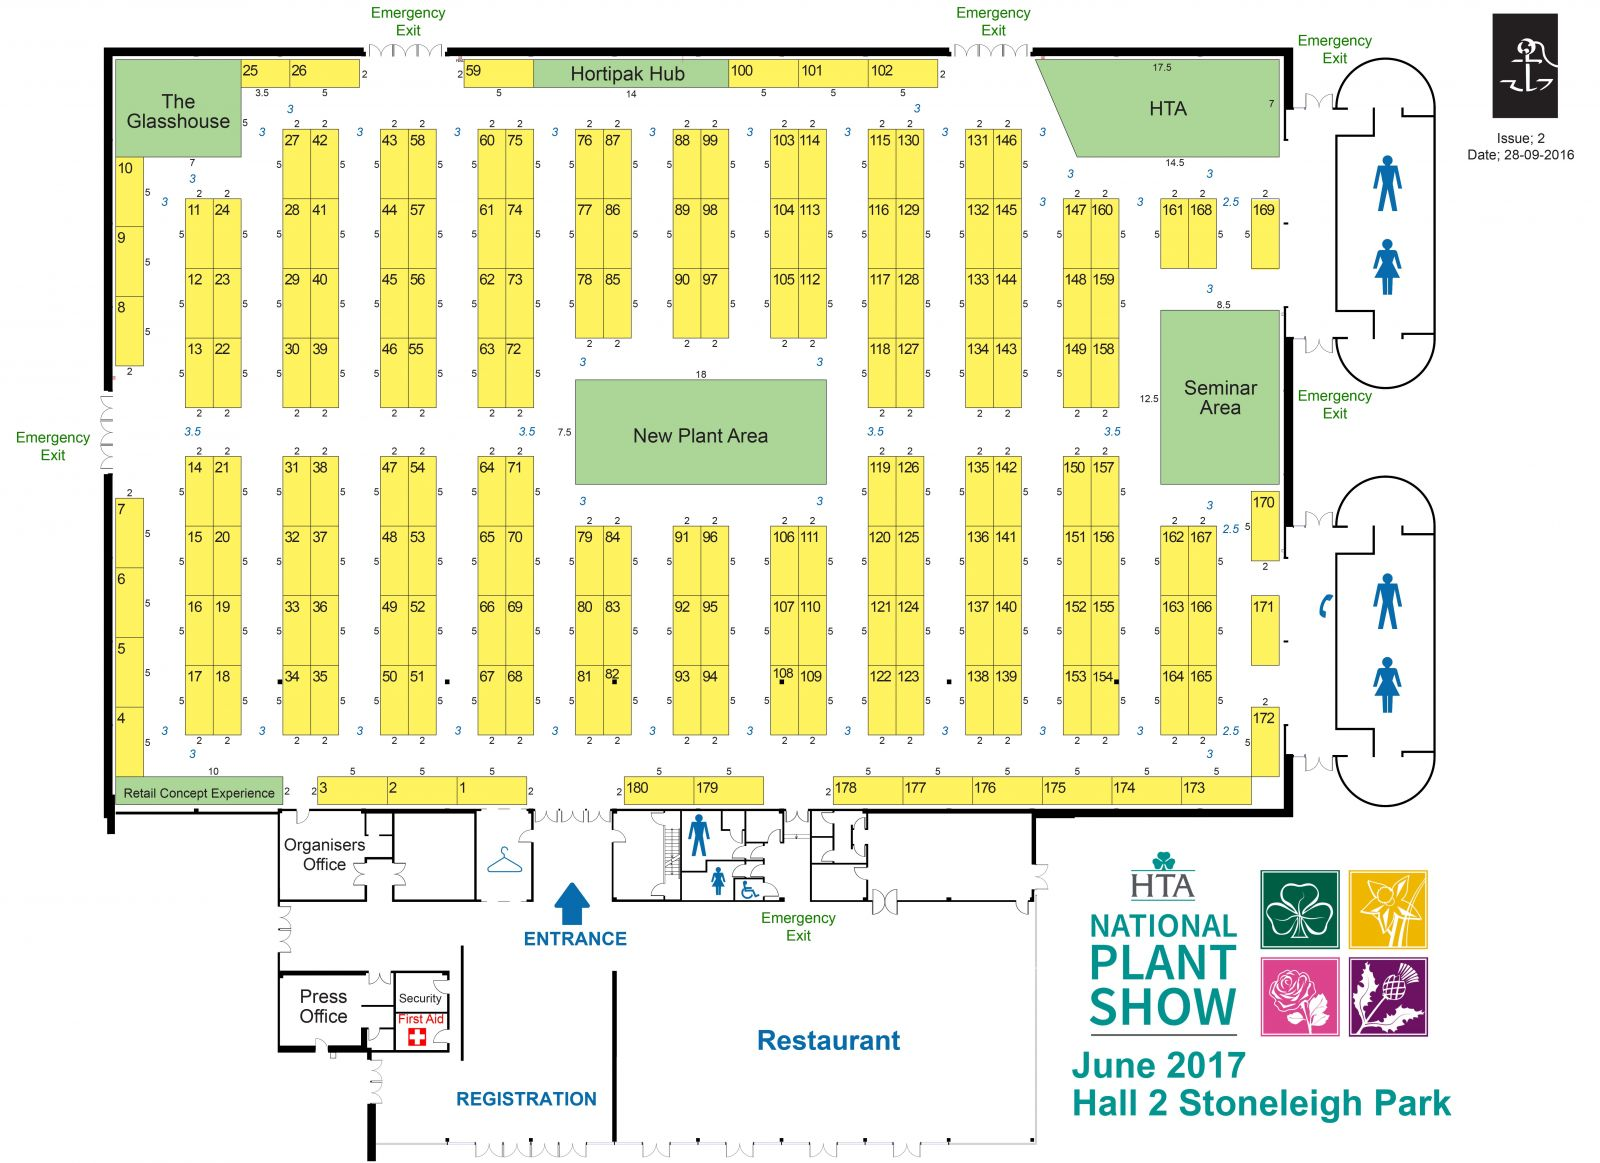 Visit Us At The Hta National Plant Show On The 20th And